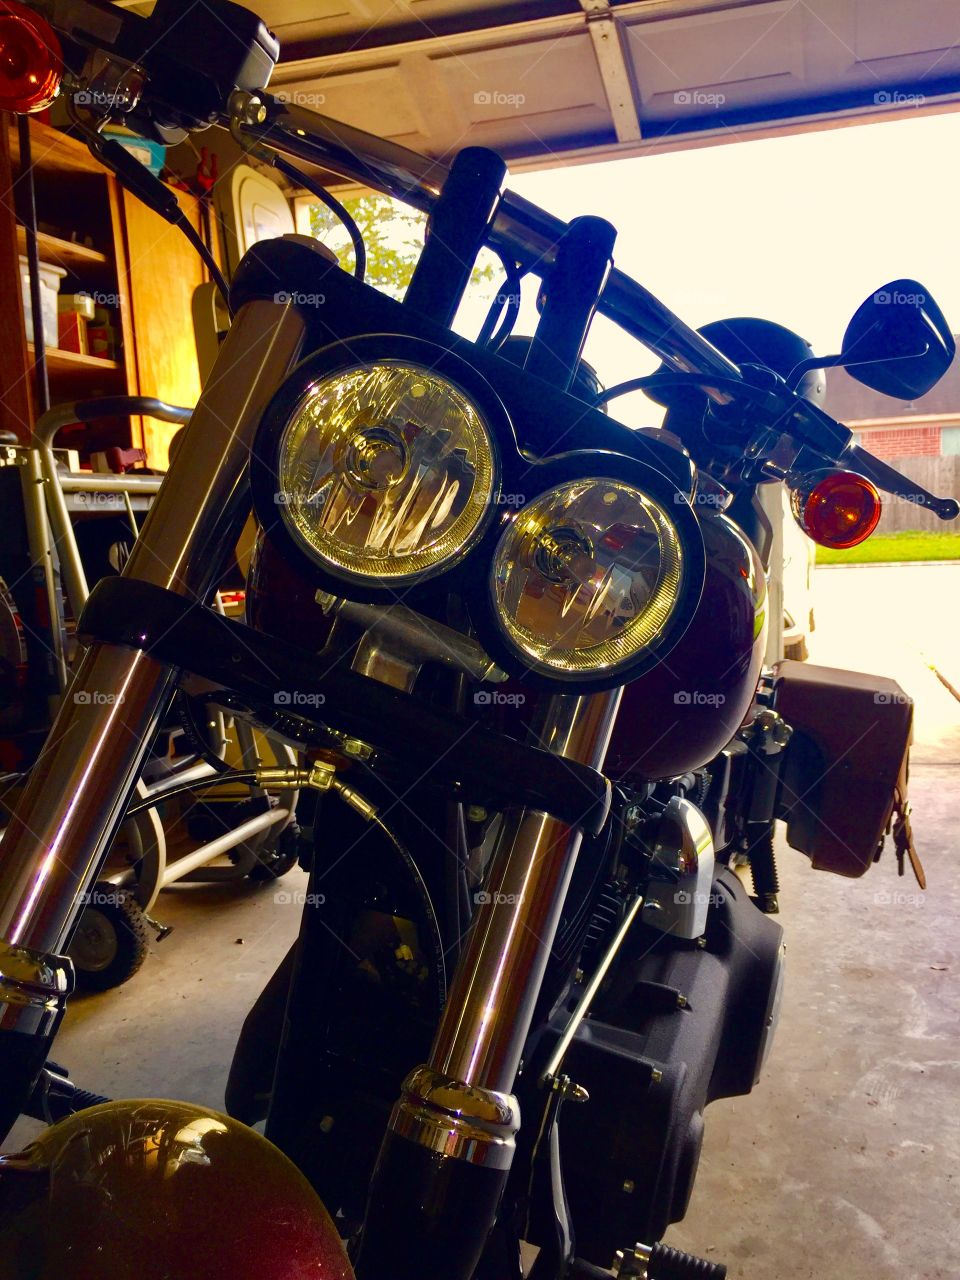 My Harley Davidson is looking at you